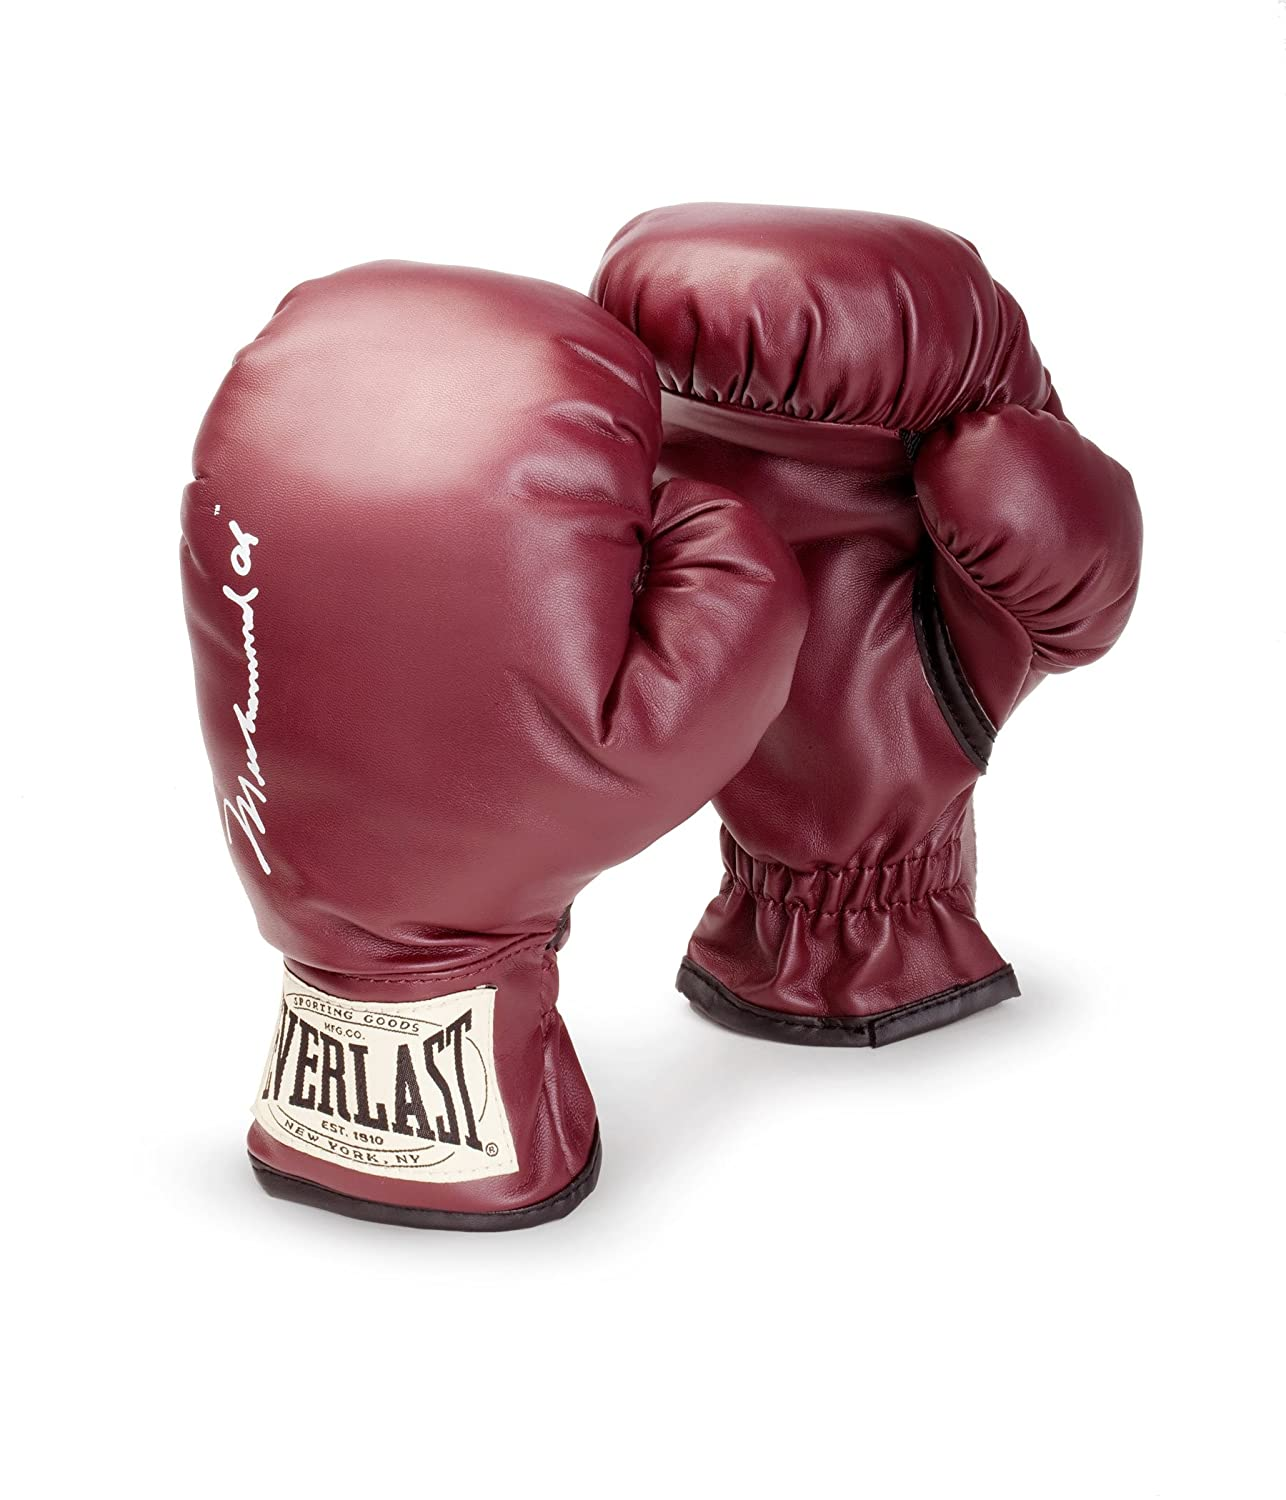 Everlast Muhammad Ali Collection Youth Handschuhe günstig